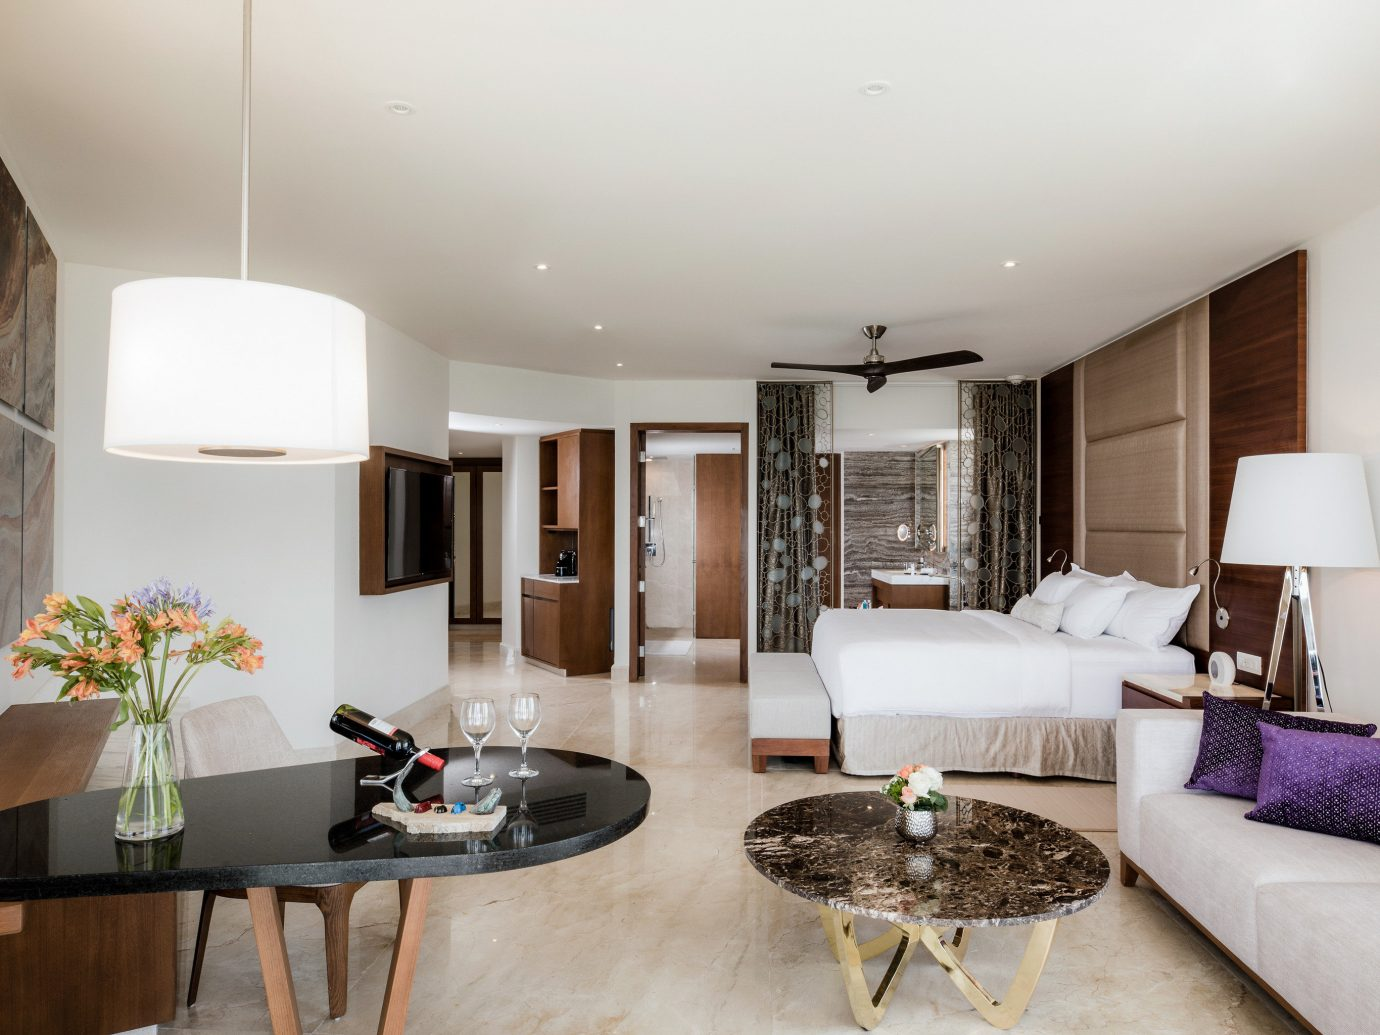 Adult-only All-Inclusive Resorts Cancun Hotels Mexico indoor wall floor room Living interior design ceiling living room furniture real estate Suite interior designer apartment penthouse apartment house decorated flat area wood several